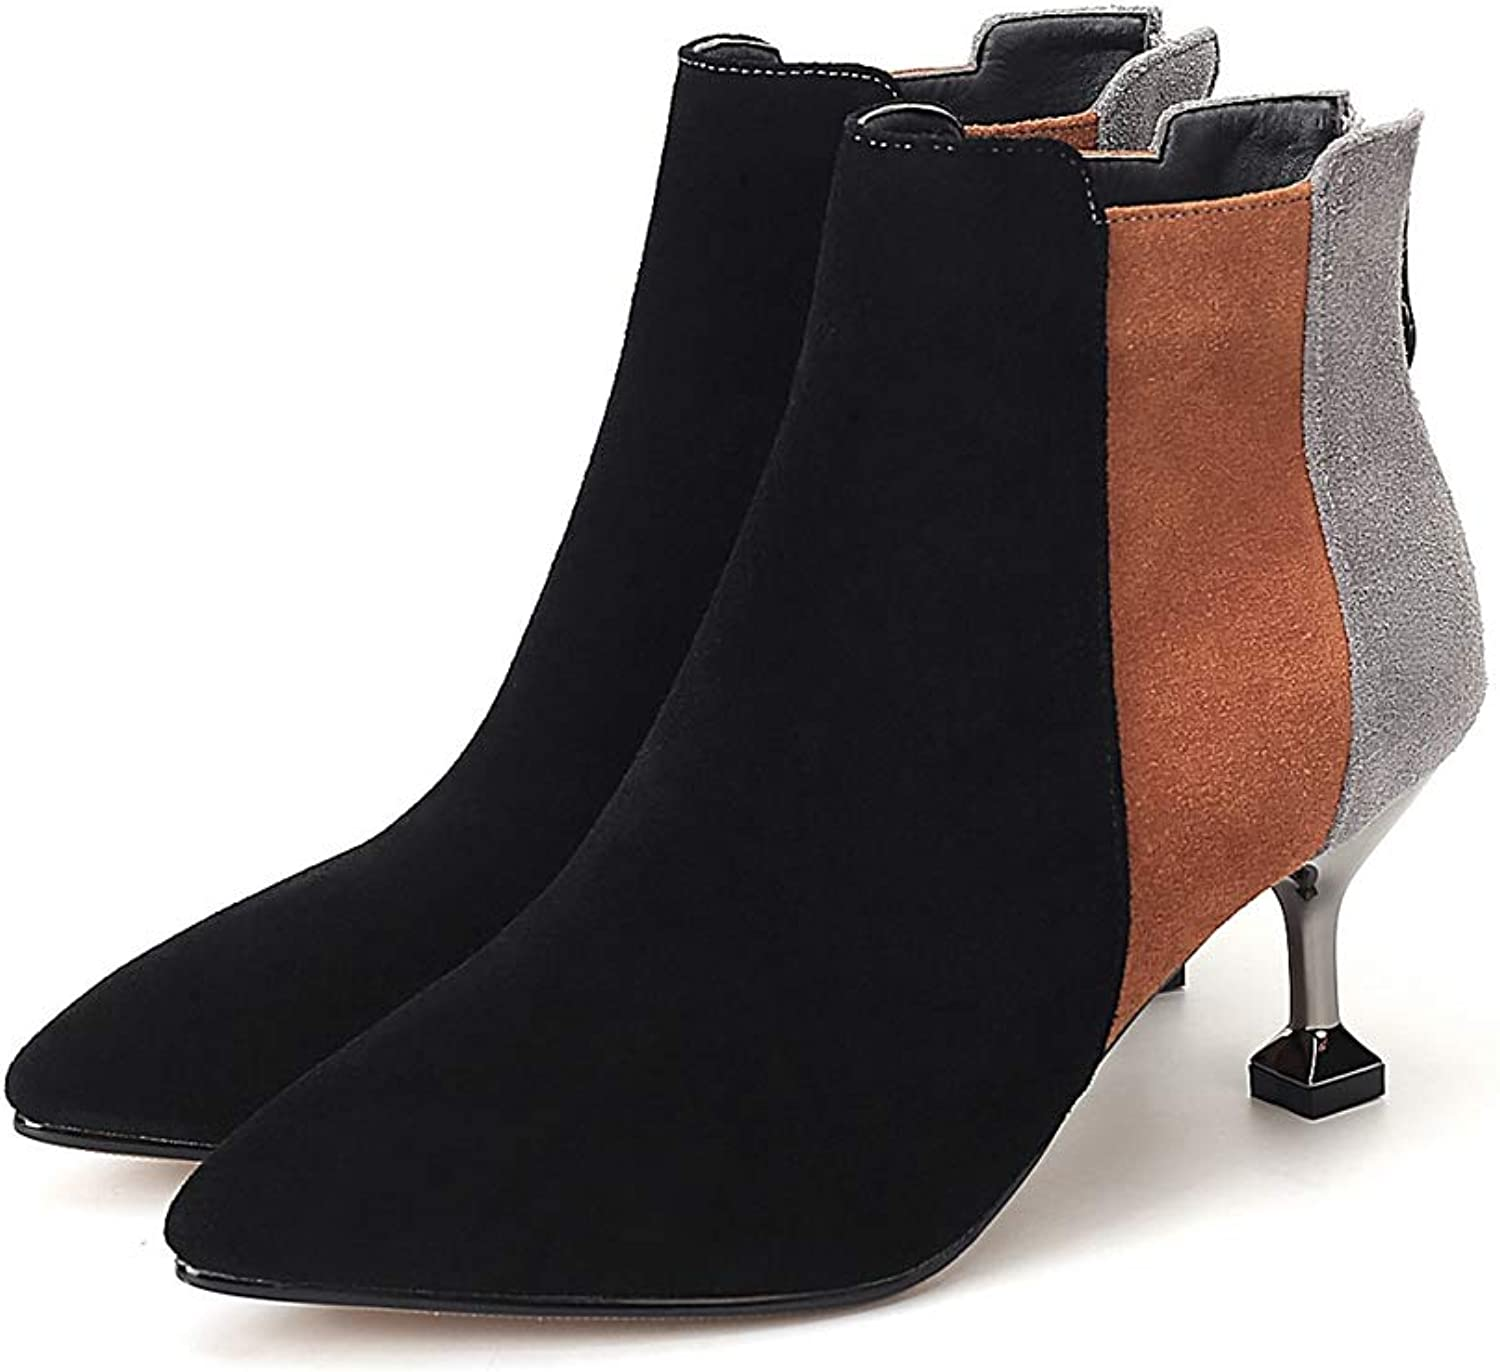 Kyle Walsh Pa Women Elegant Ankle Booties Pointed Toe Thin Heel Female Trendy Autumn Winter Boots